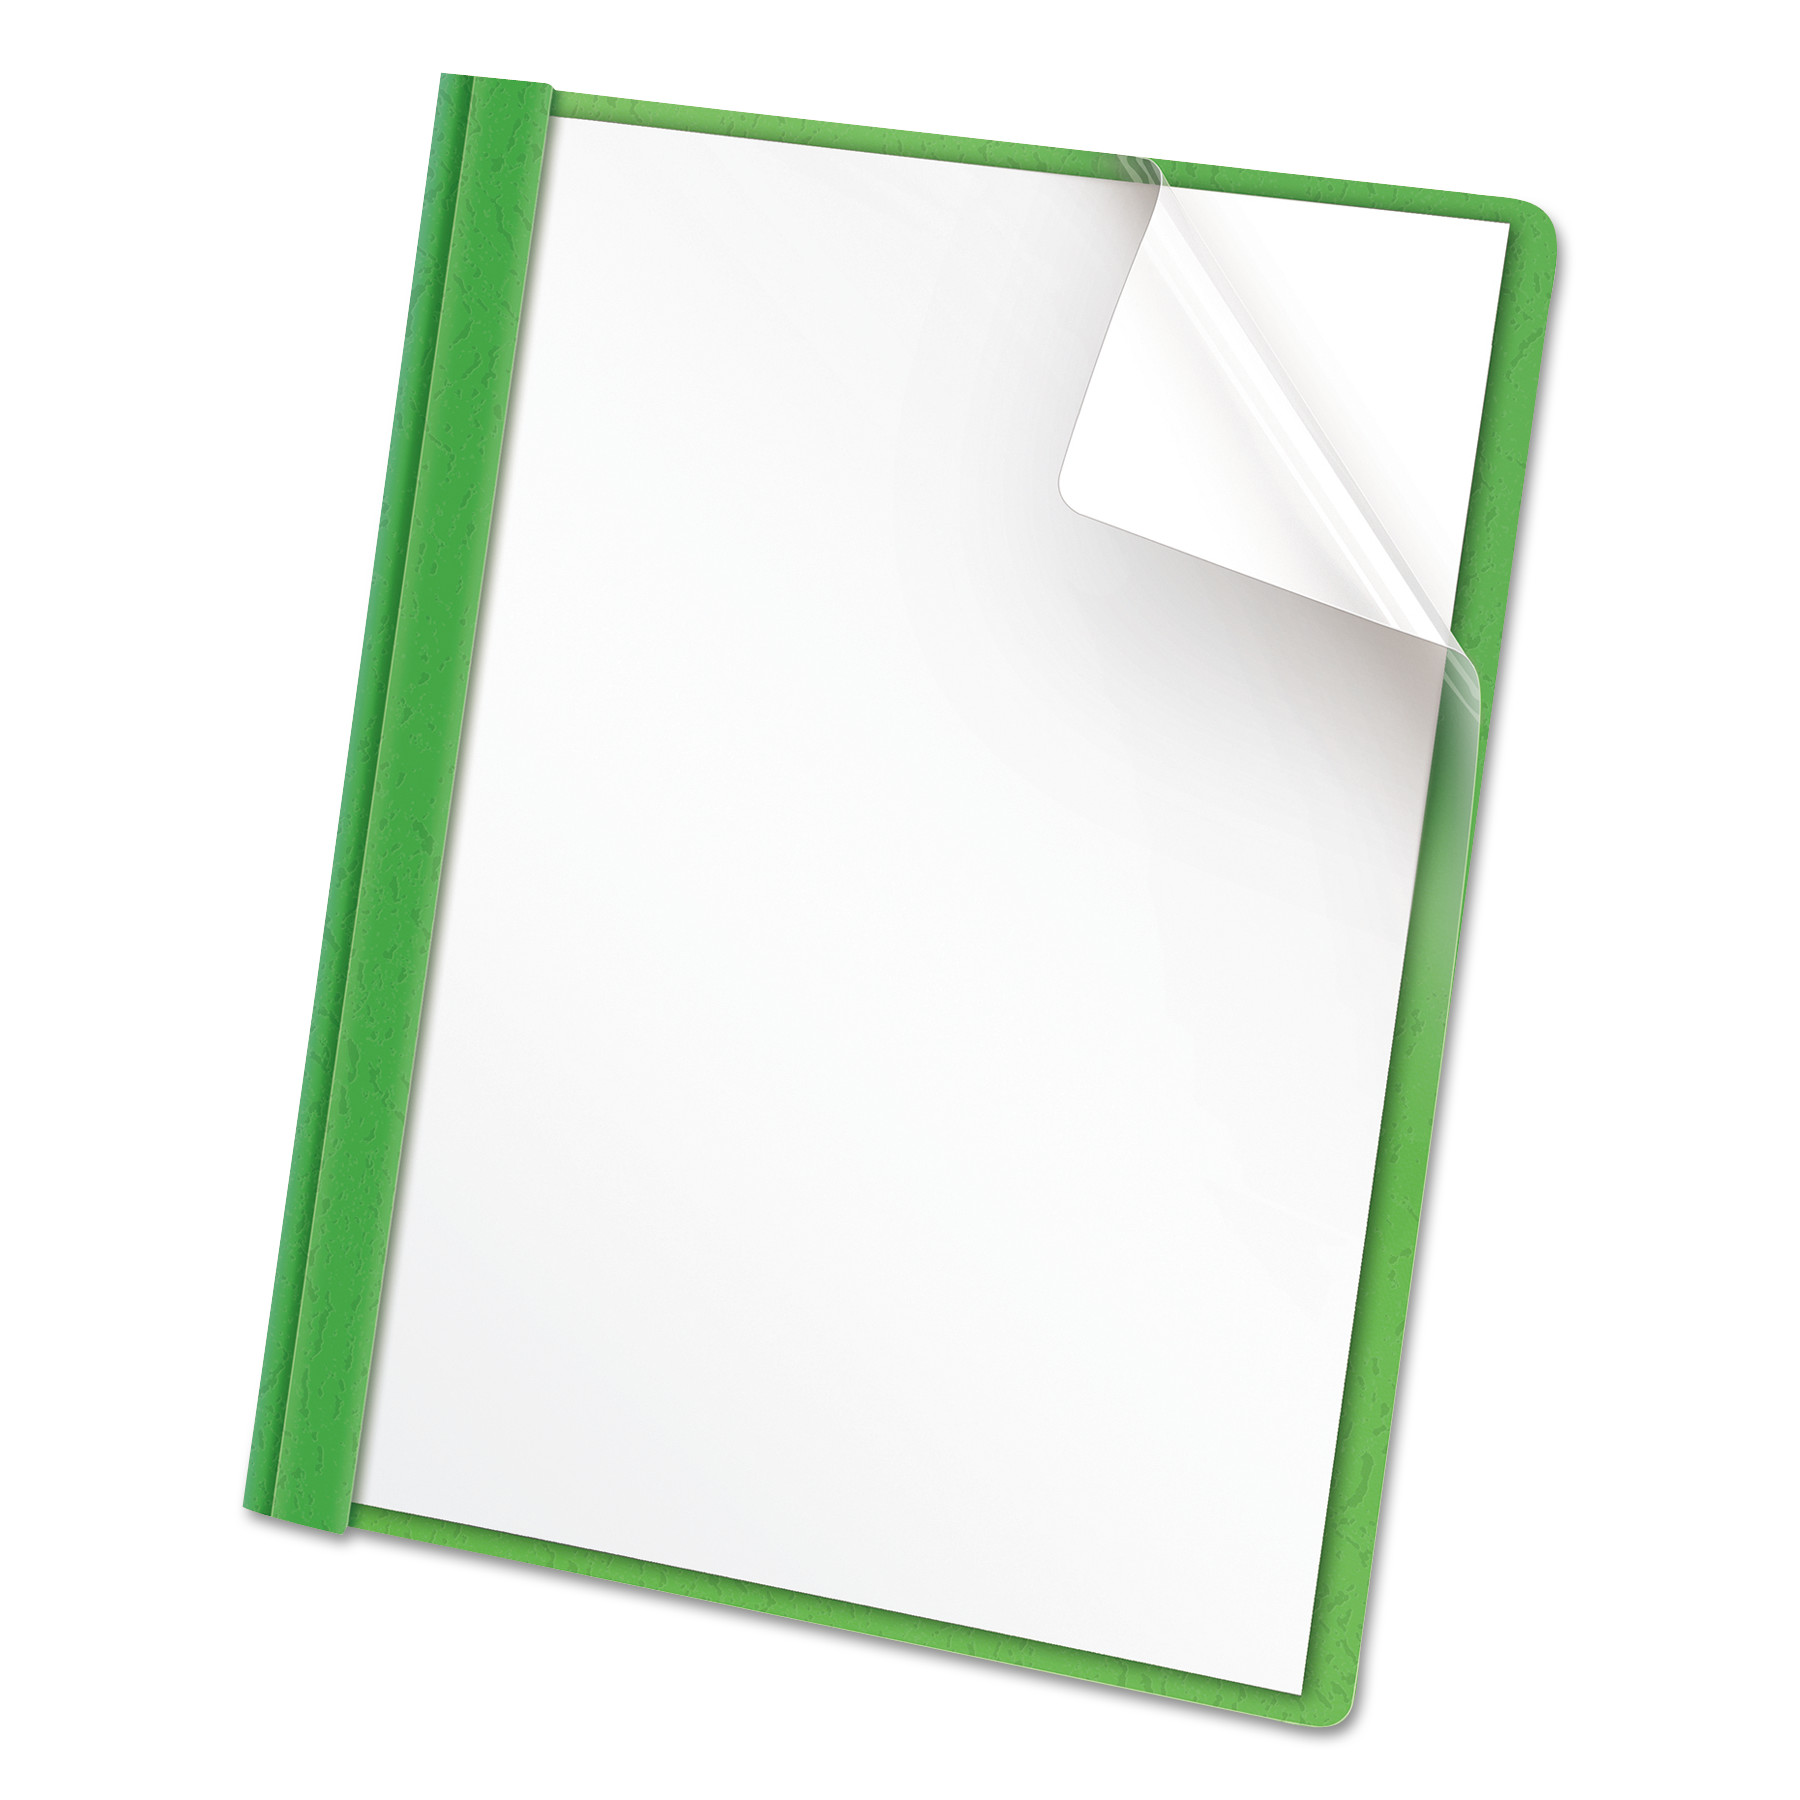 Universal Clear Front Report Cover, Tang Fasteners, Letter Size, Green, 25 Box -UNV57124 by Universal Office Products